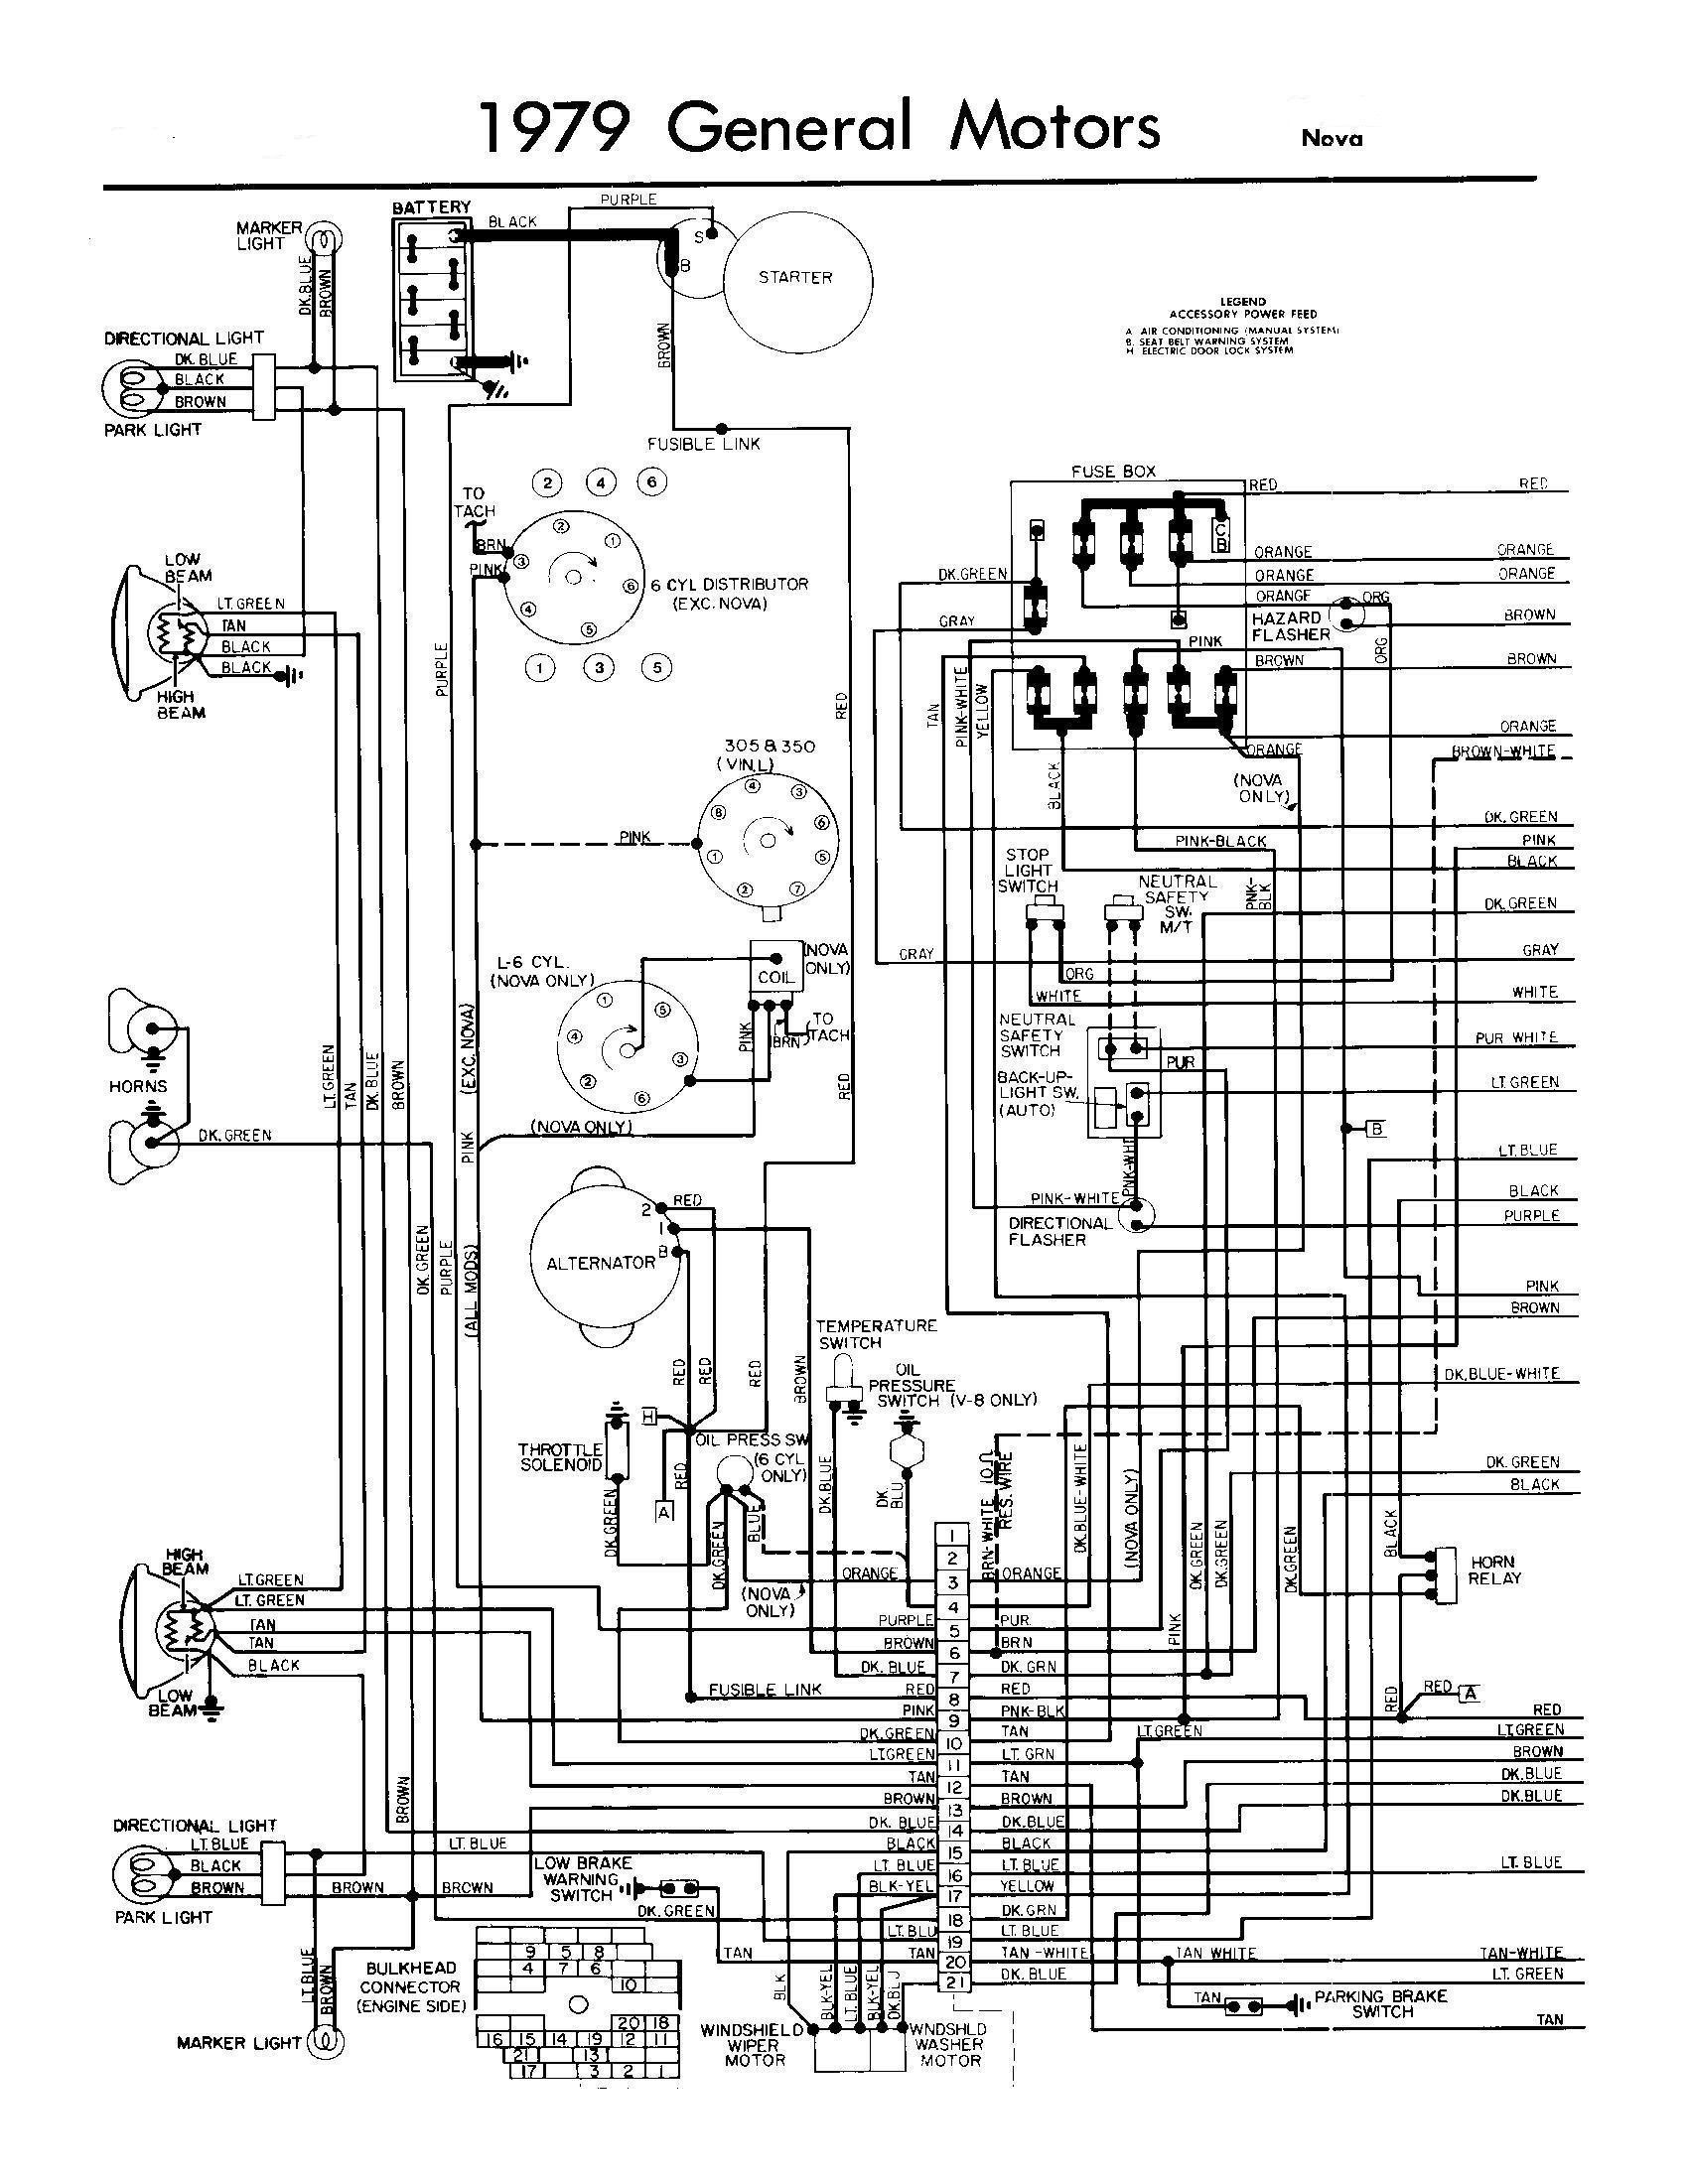 Chevy Heater Wiring Fe Diagrams Diagram Besides Electric Baseboard Thermostat 1980 Data Air Conditioning 1976 Trans Am